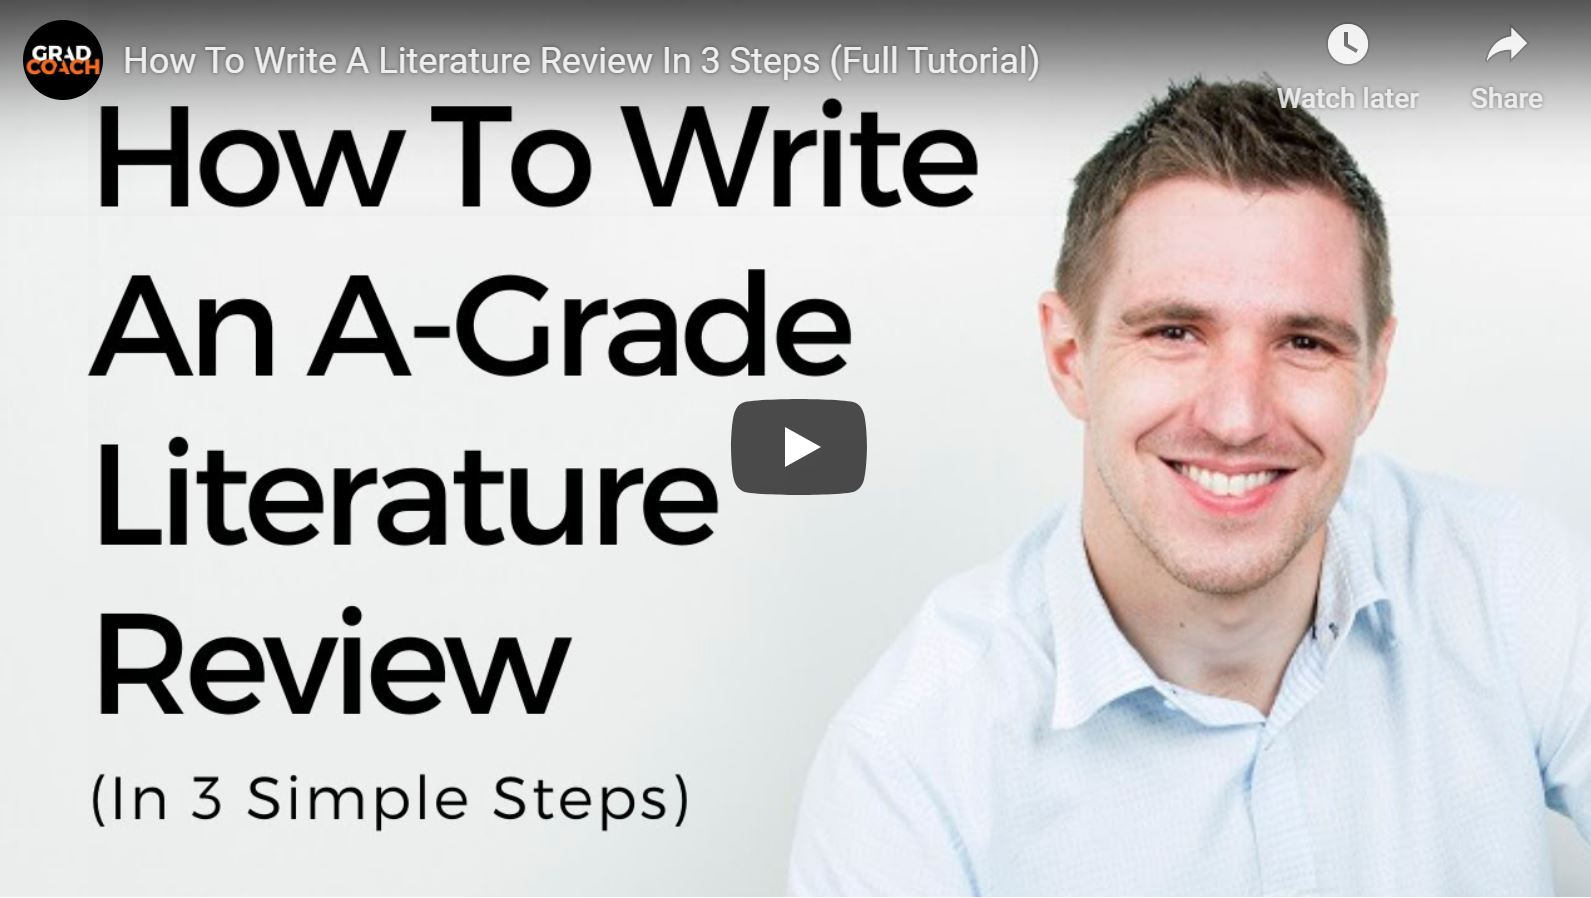 How To Write A 5-Star Literature Review (In 3 Straightforward Steps)